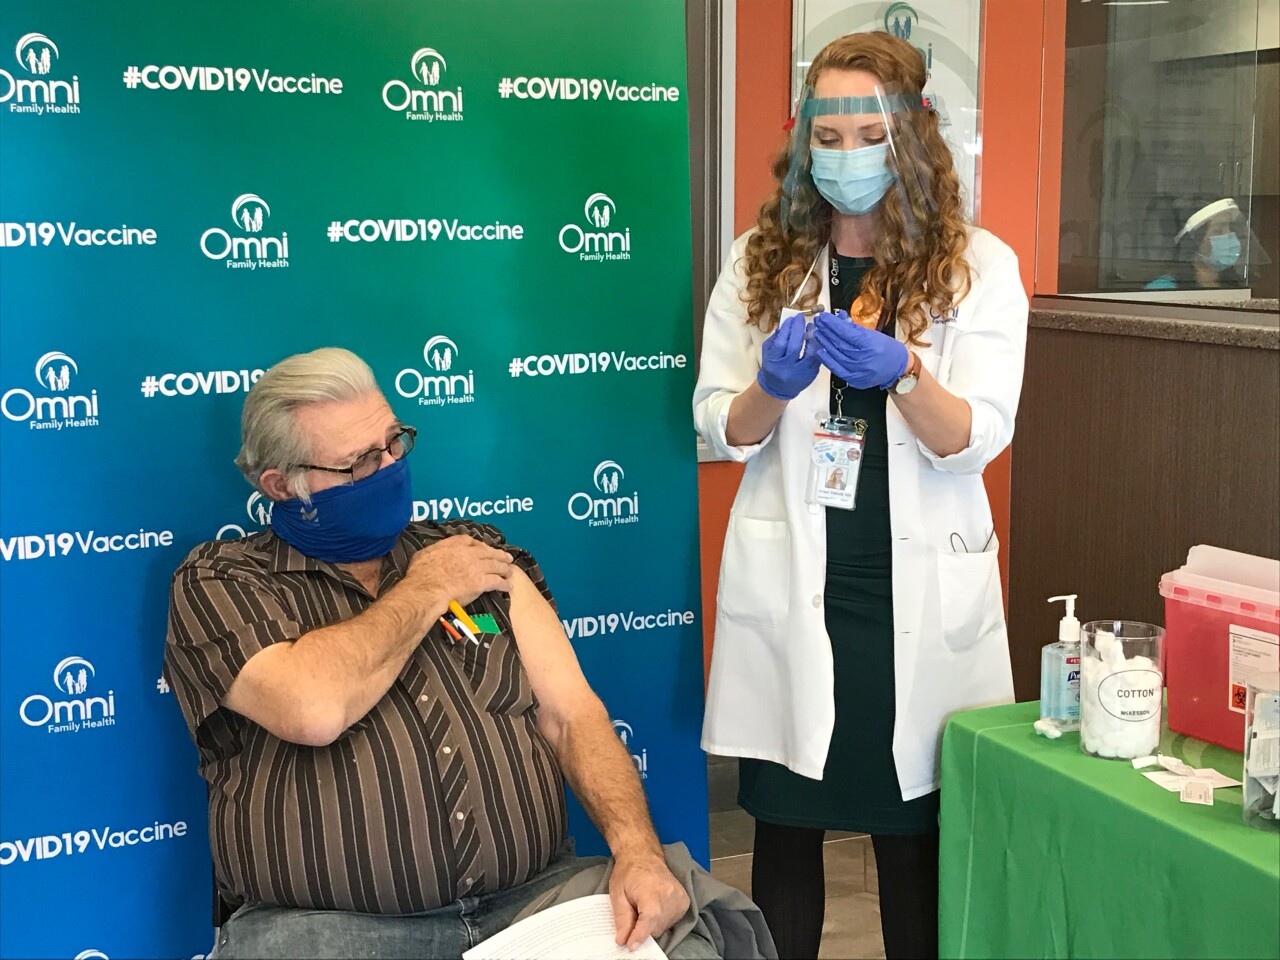 Omni Family Health vaccinates residents 65 and older